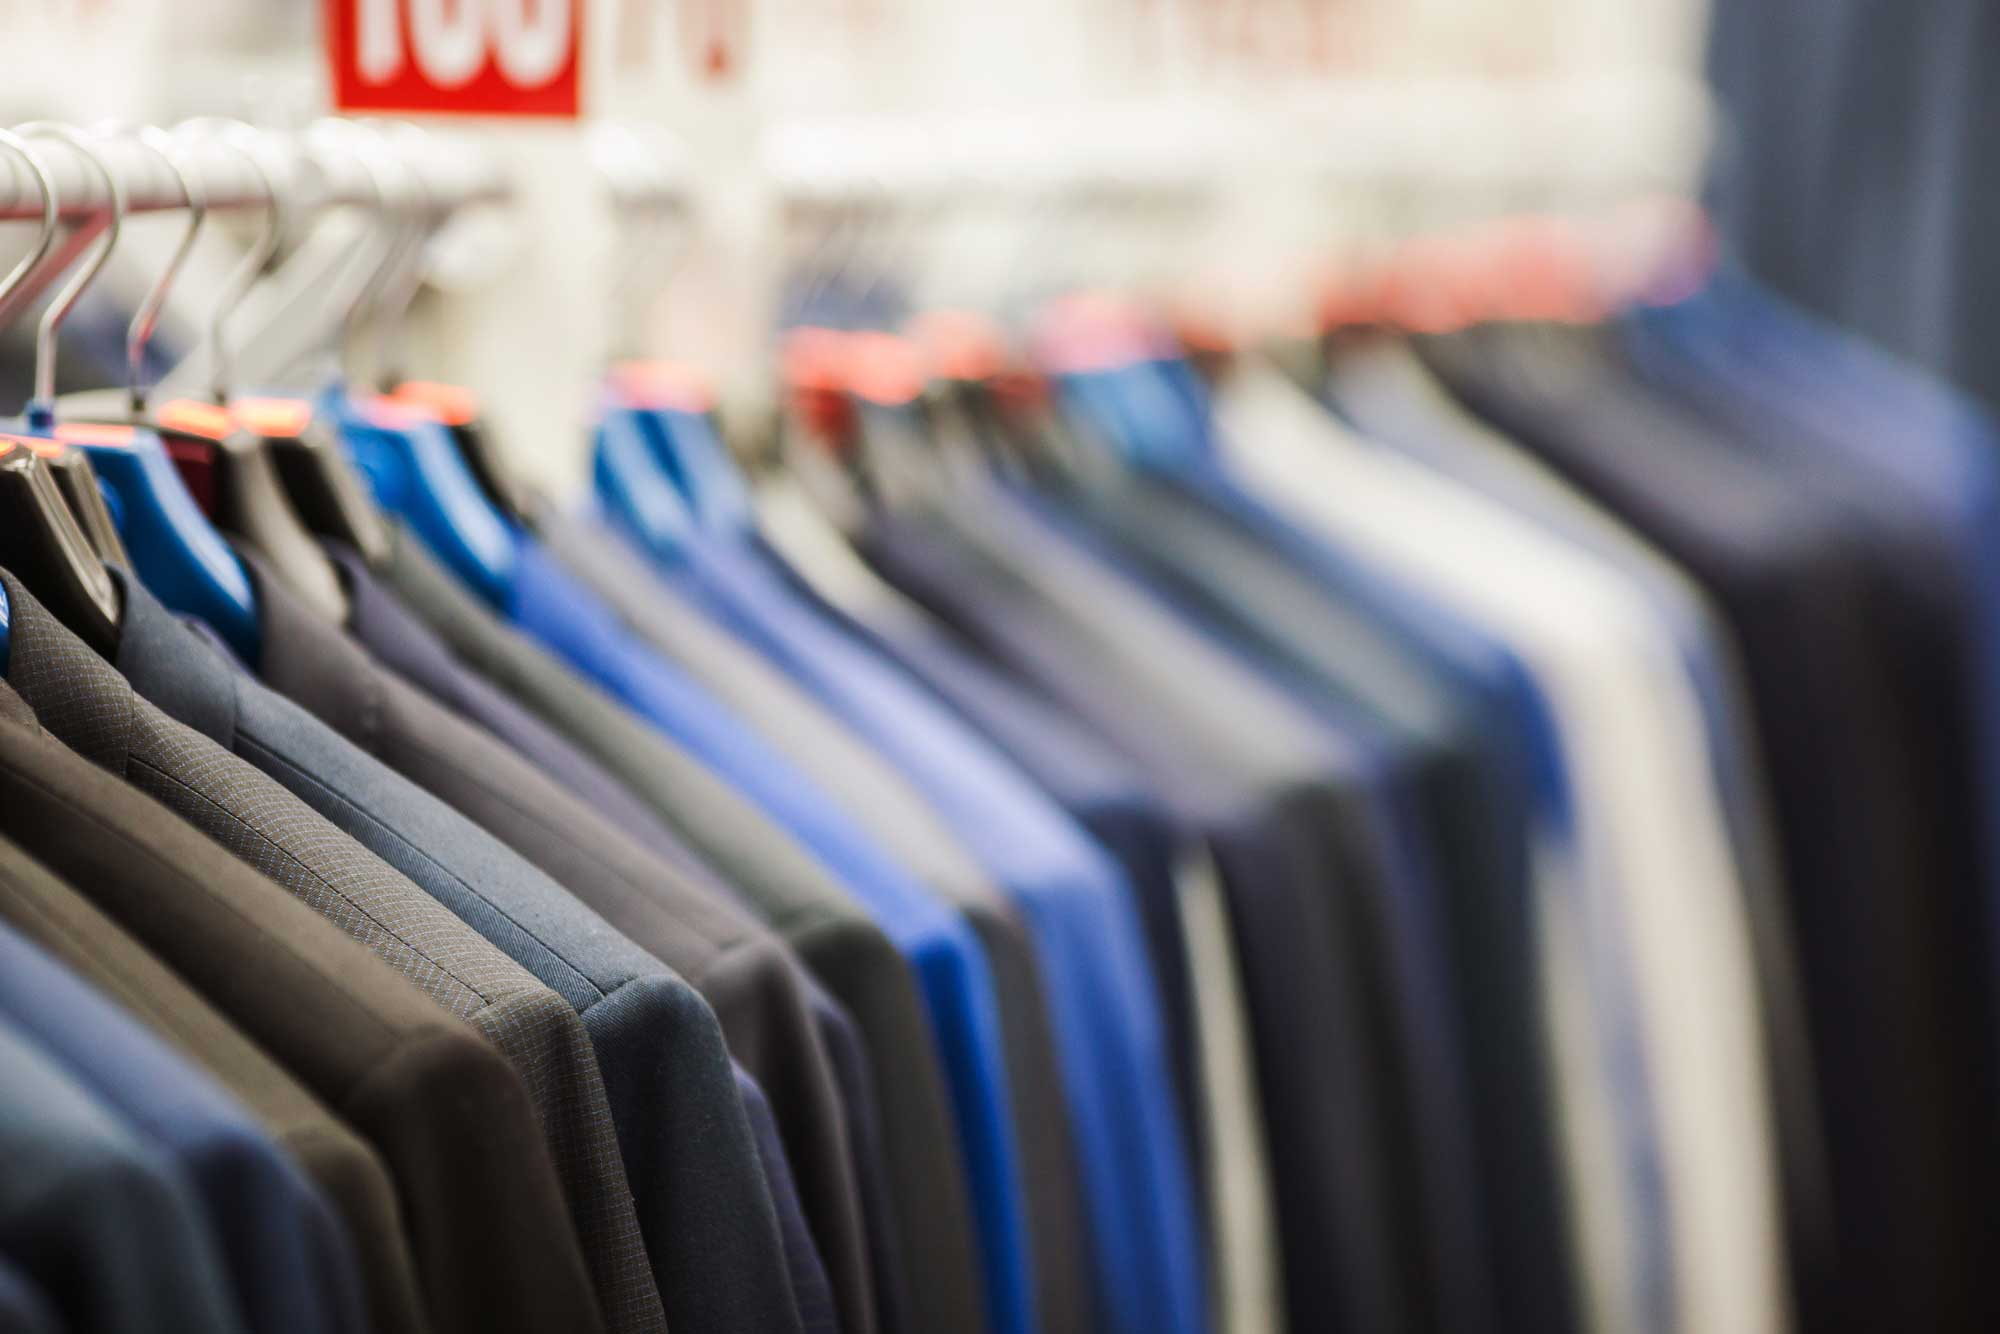 suits_and_sportcoats_at_ross_cleaners